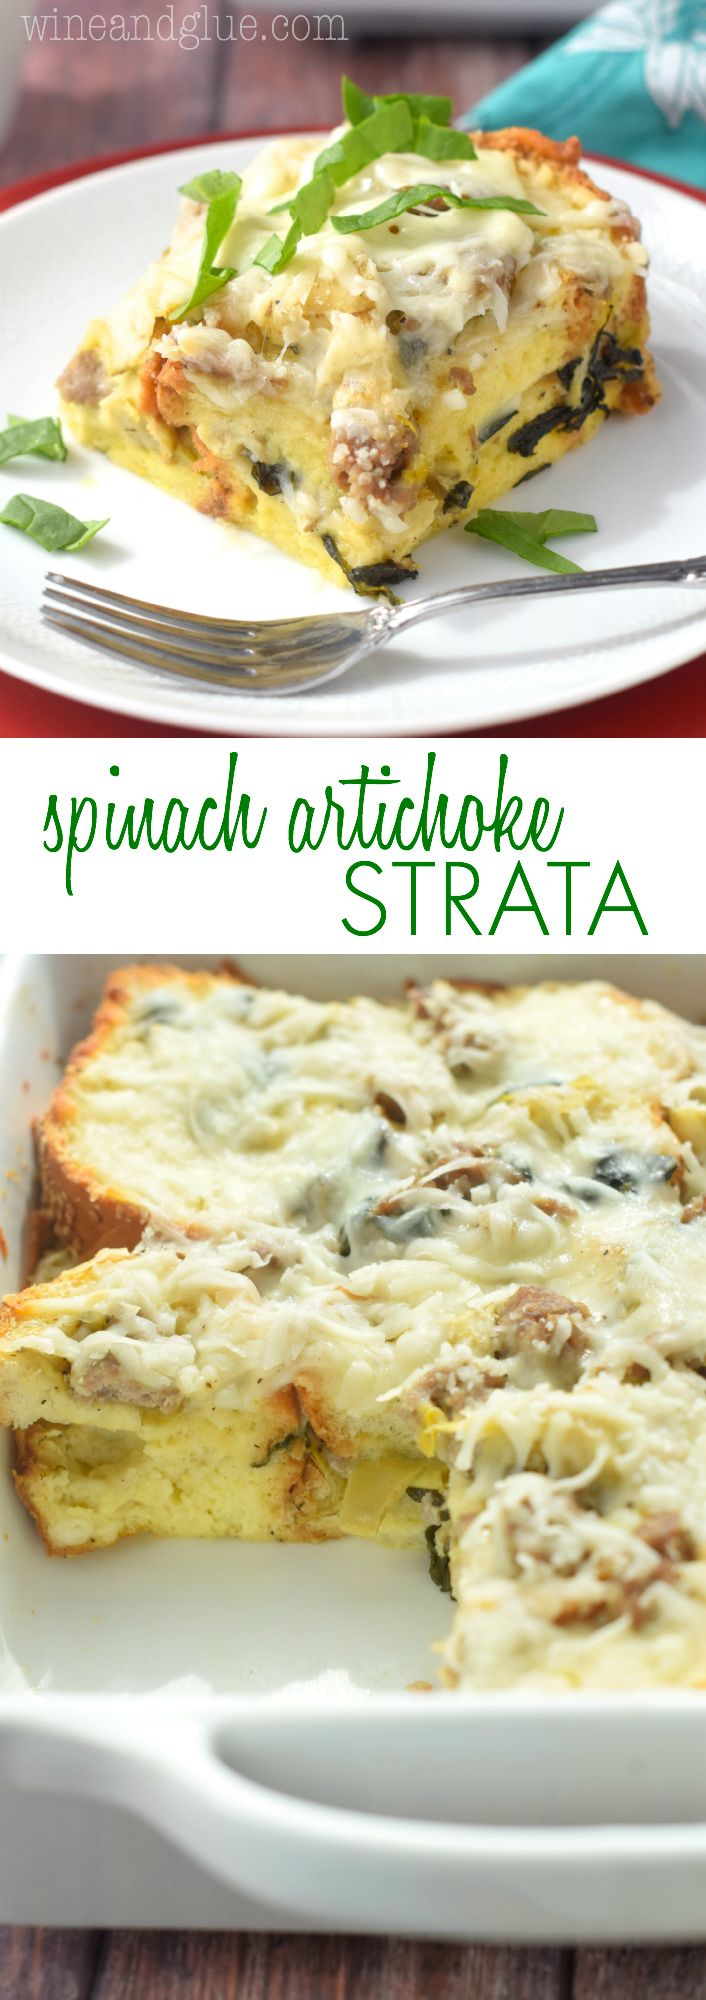 this overnight spinach artichoke strata makes for a delicious breakfast casserole ready to throw in the - Strata Egg Dish